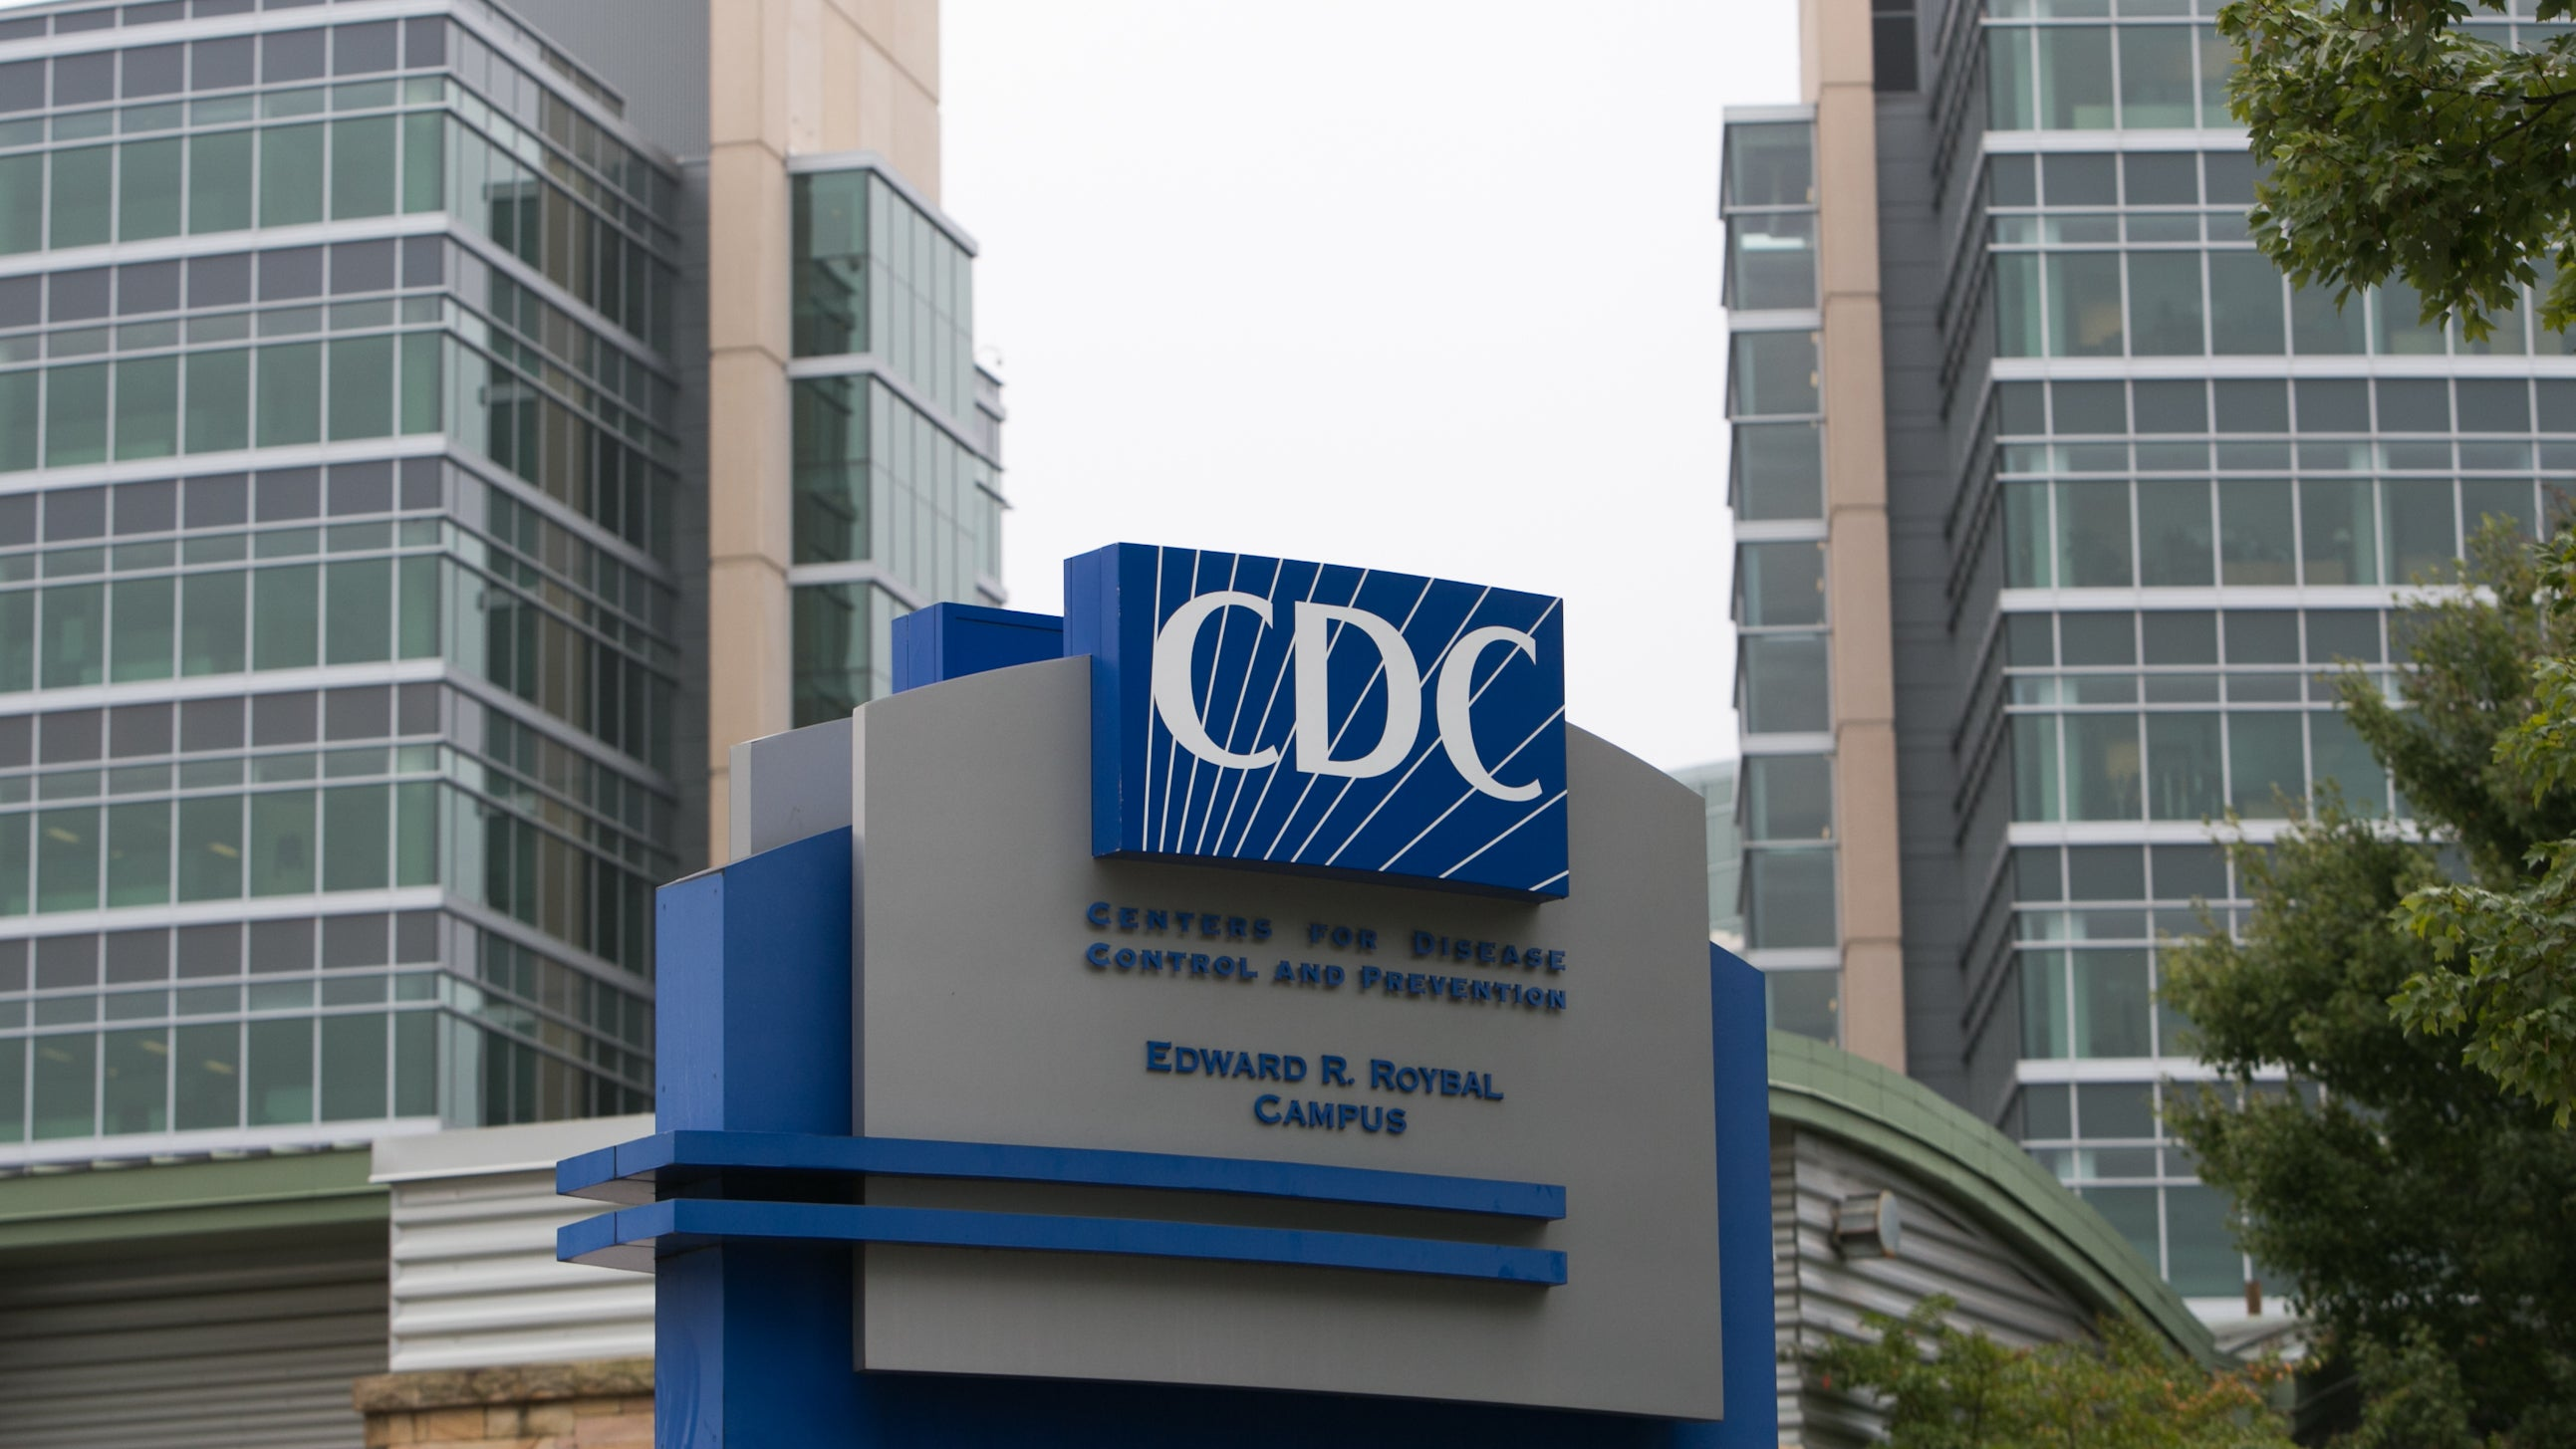 E. Coli Outbreak Has Sickened Over 70 People in the U.S, But CDC Says The Source Is A Mystery